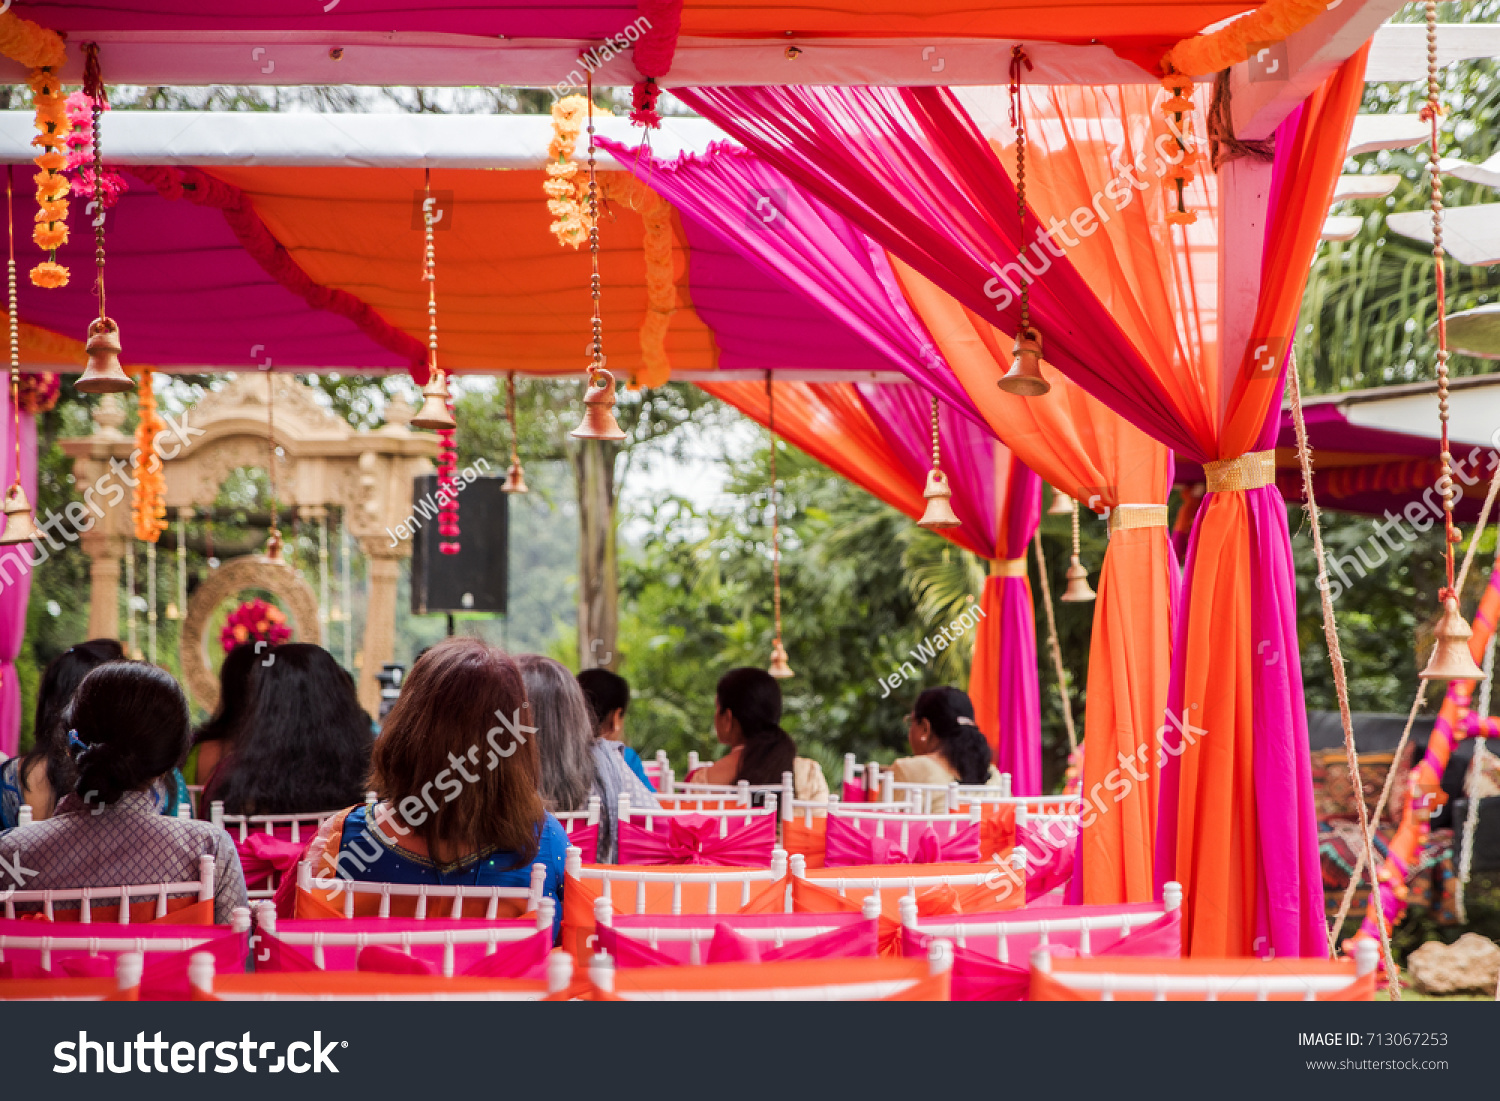 Few Guests Seated Under Colorful Outdoor Stock Photo Edit Now 713067253